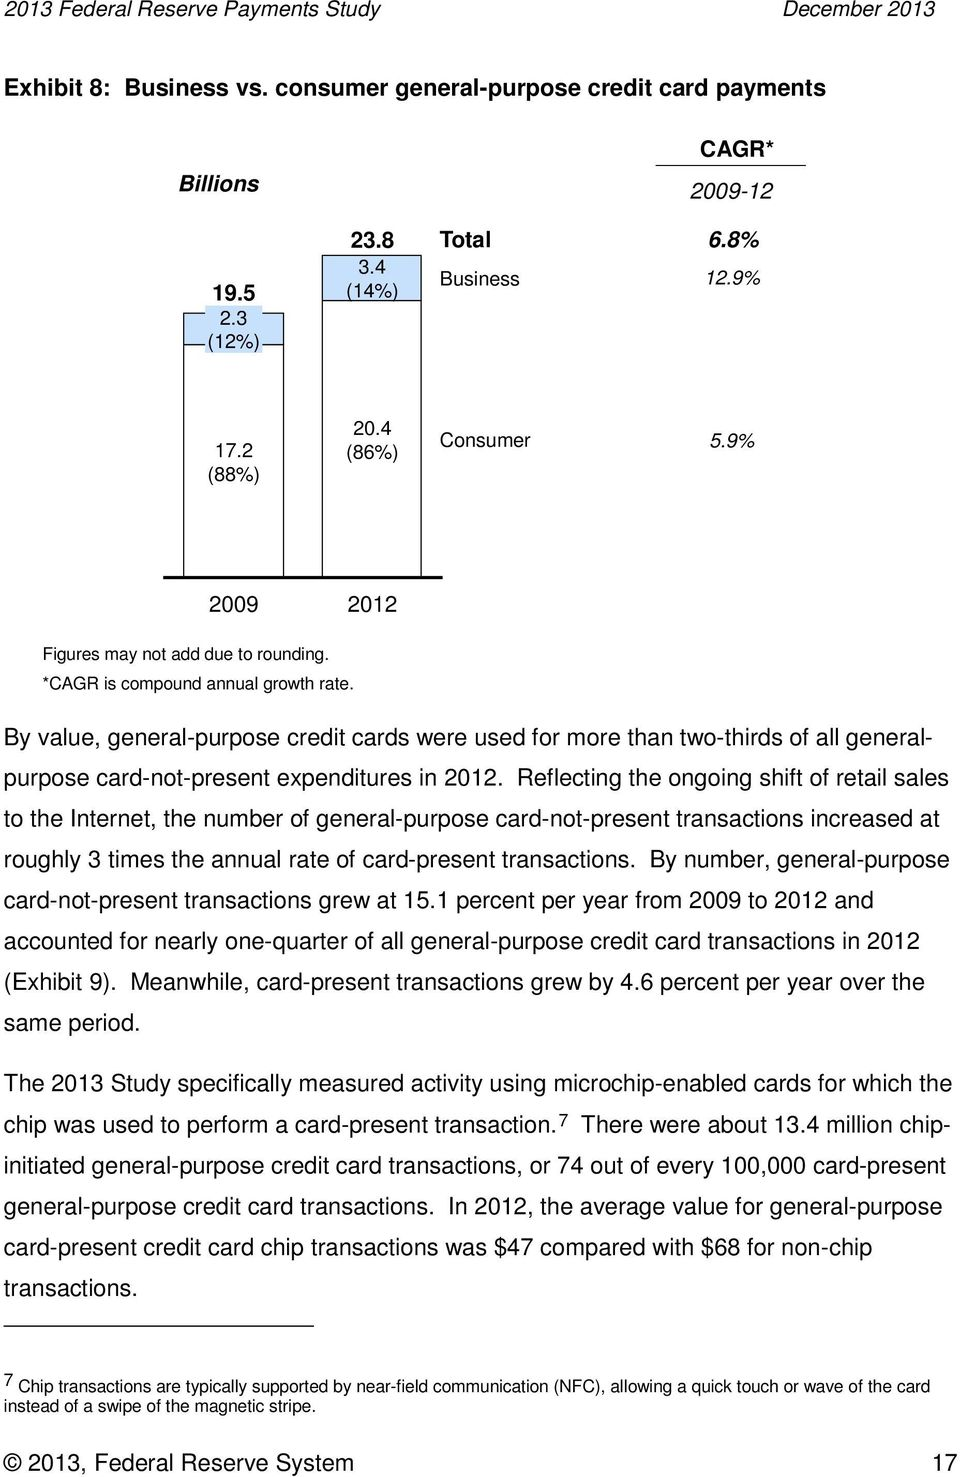 By value, general-purpose credit cards were used for more than two-thirds of all generalpurpose card-not-present expenditures in 2012.